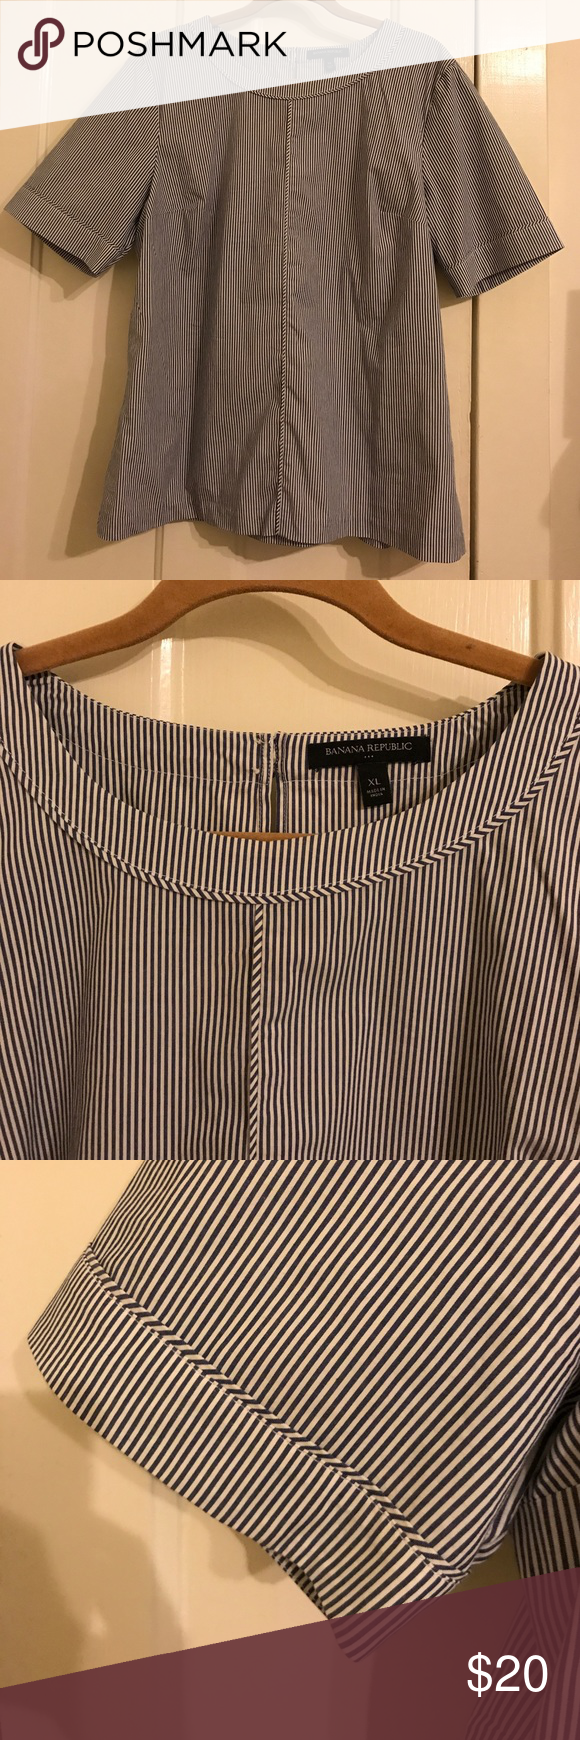 Blue and white striped top Short sleeve blue and white striped top. Dual button closure in back. Worn once, great condition, smoke free. From banana republic factory store. Banana Republic Tops Tees - Short Sleeve